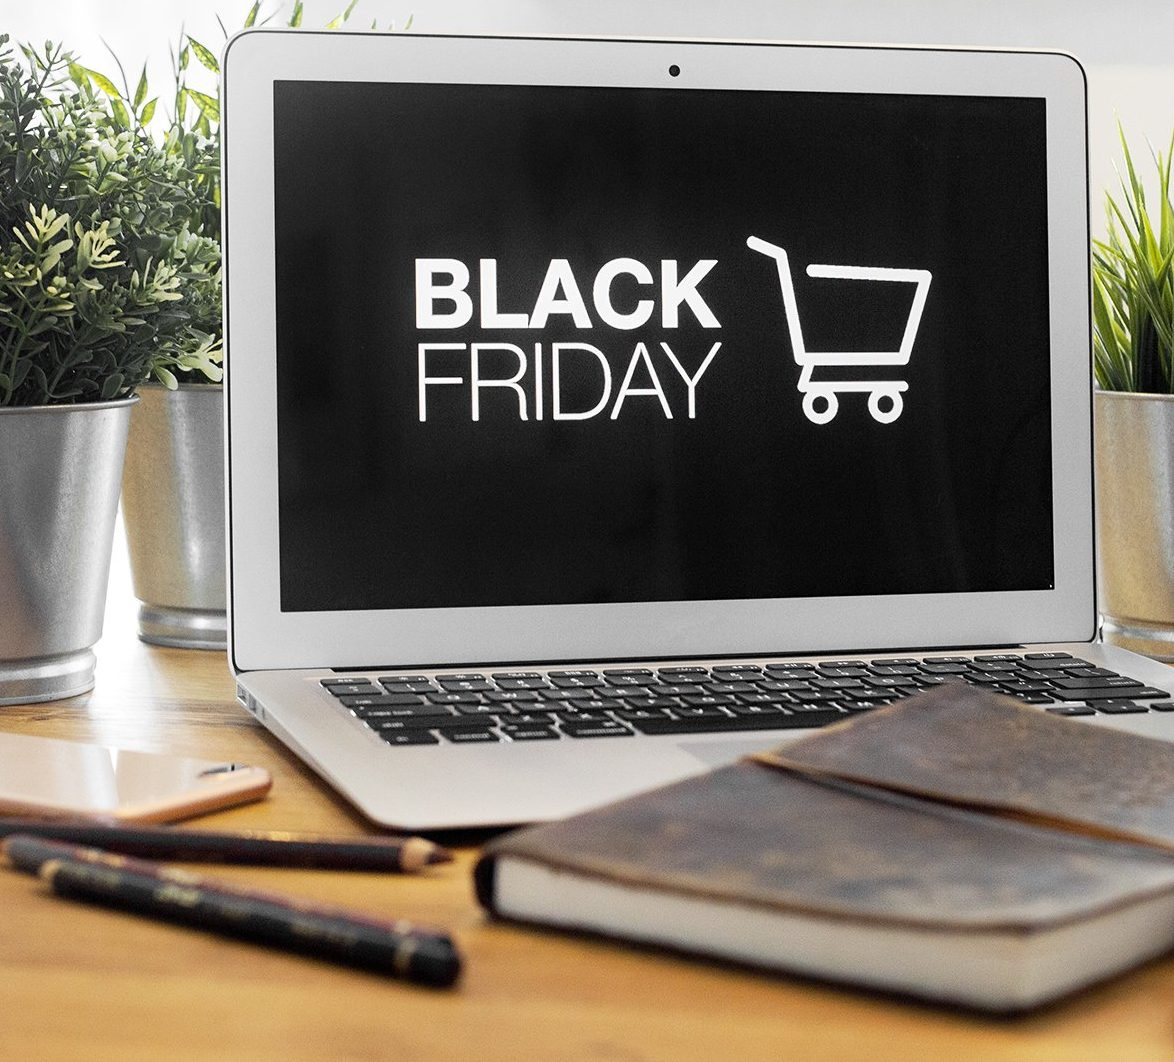 8 Hacks to Have the Best Black Friday